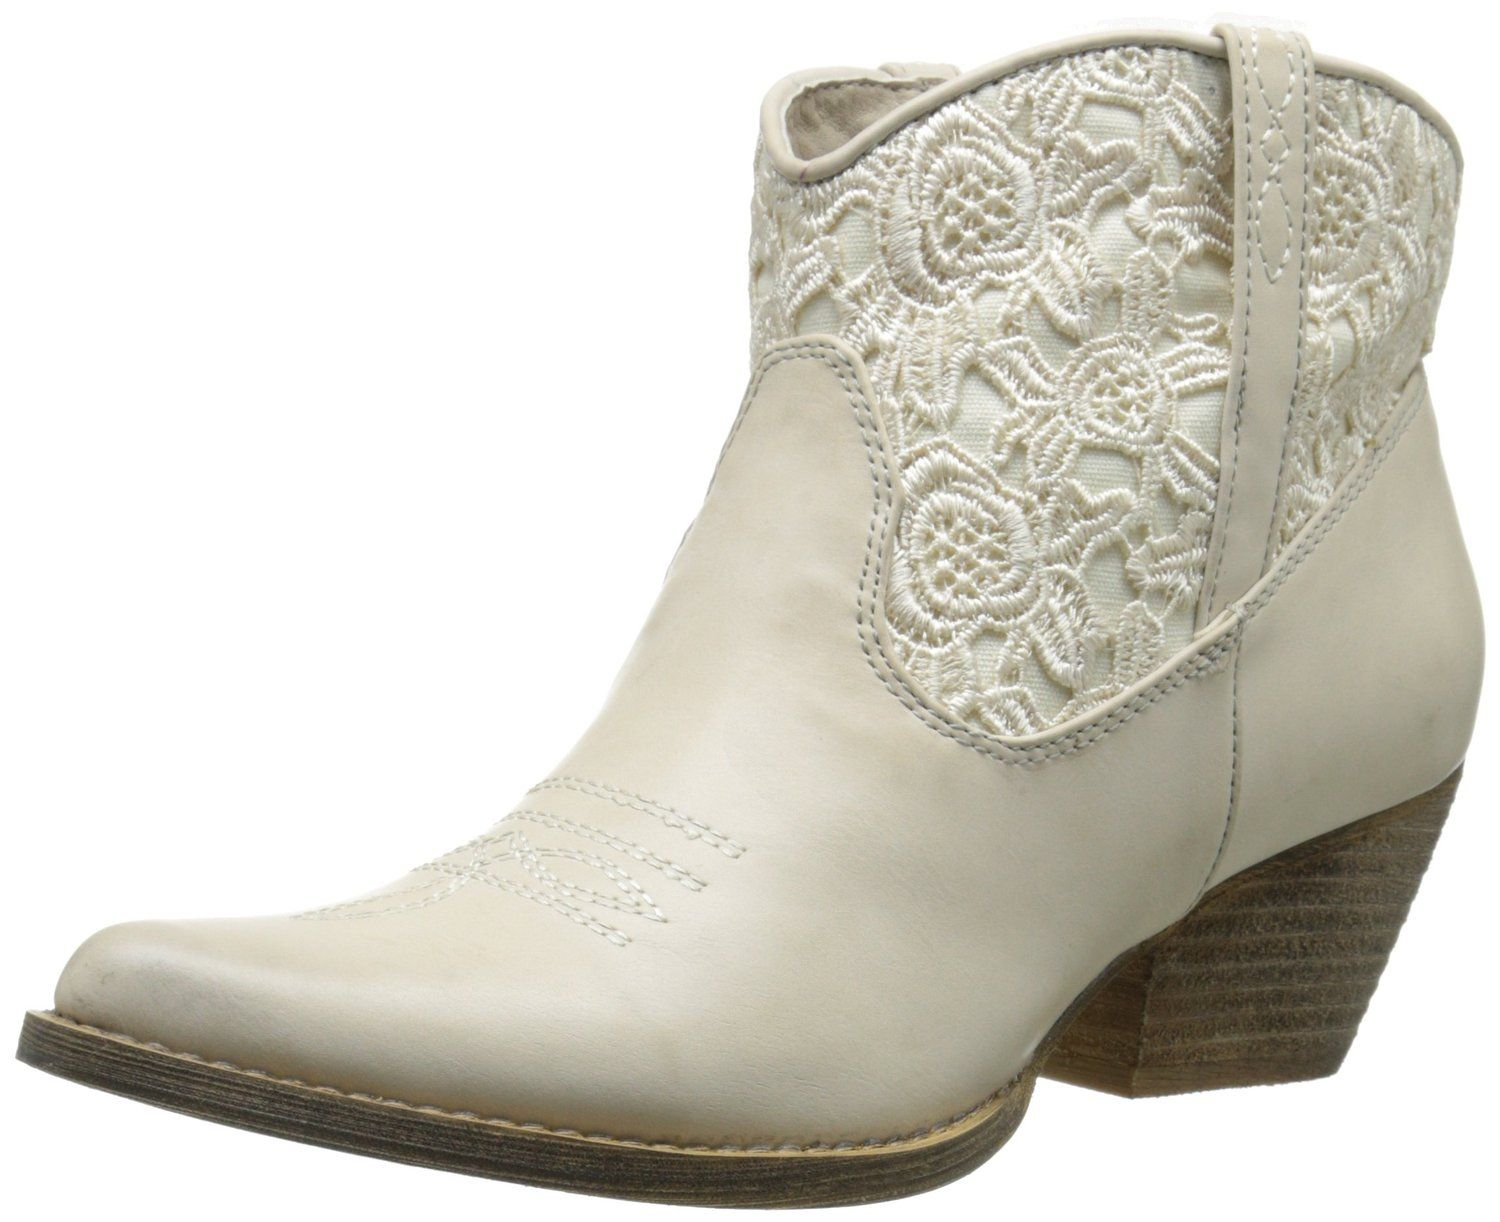 770165c18ca82 Amazon.com: Very Volatile Women's Libbylou Boot: Shoes | Clothes ...